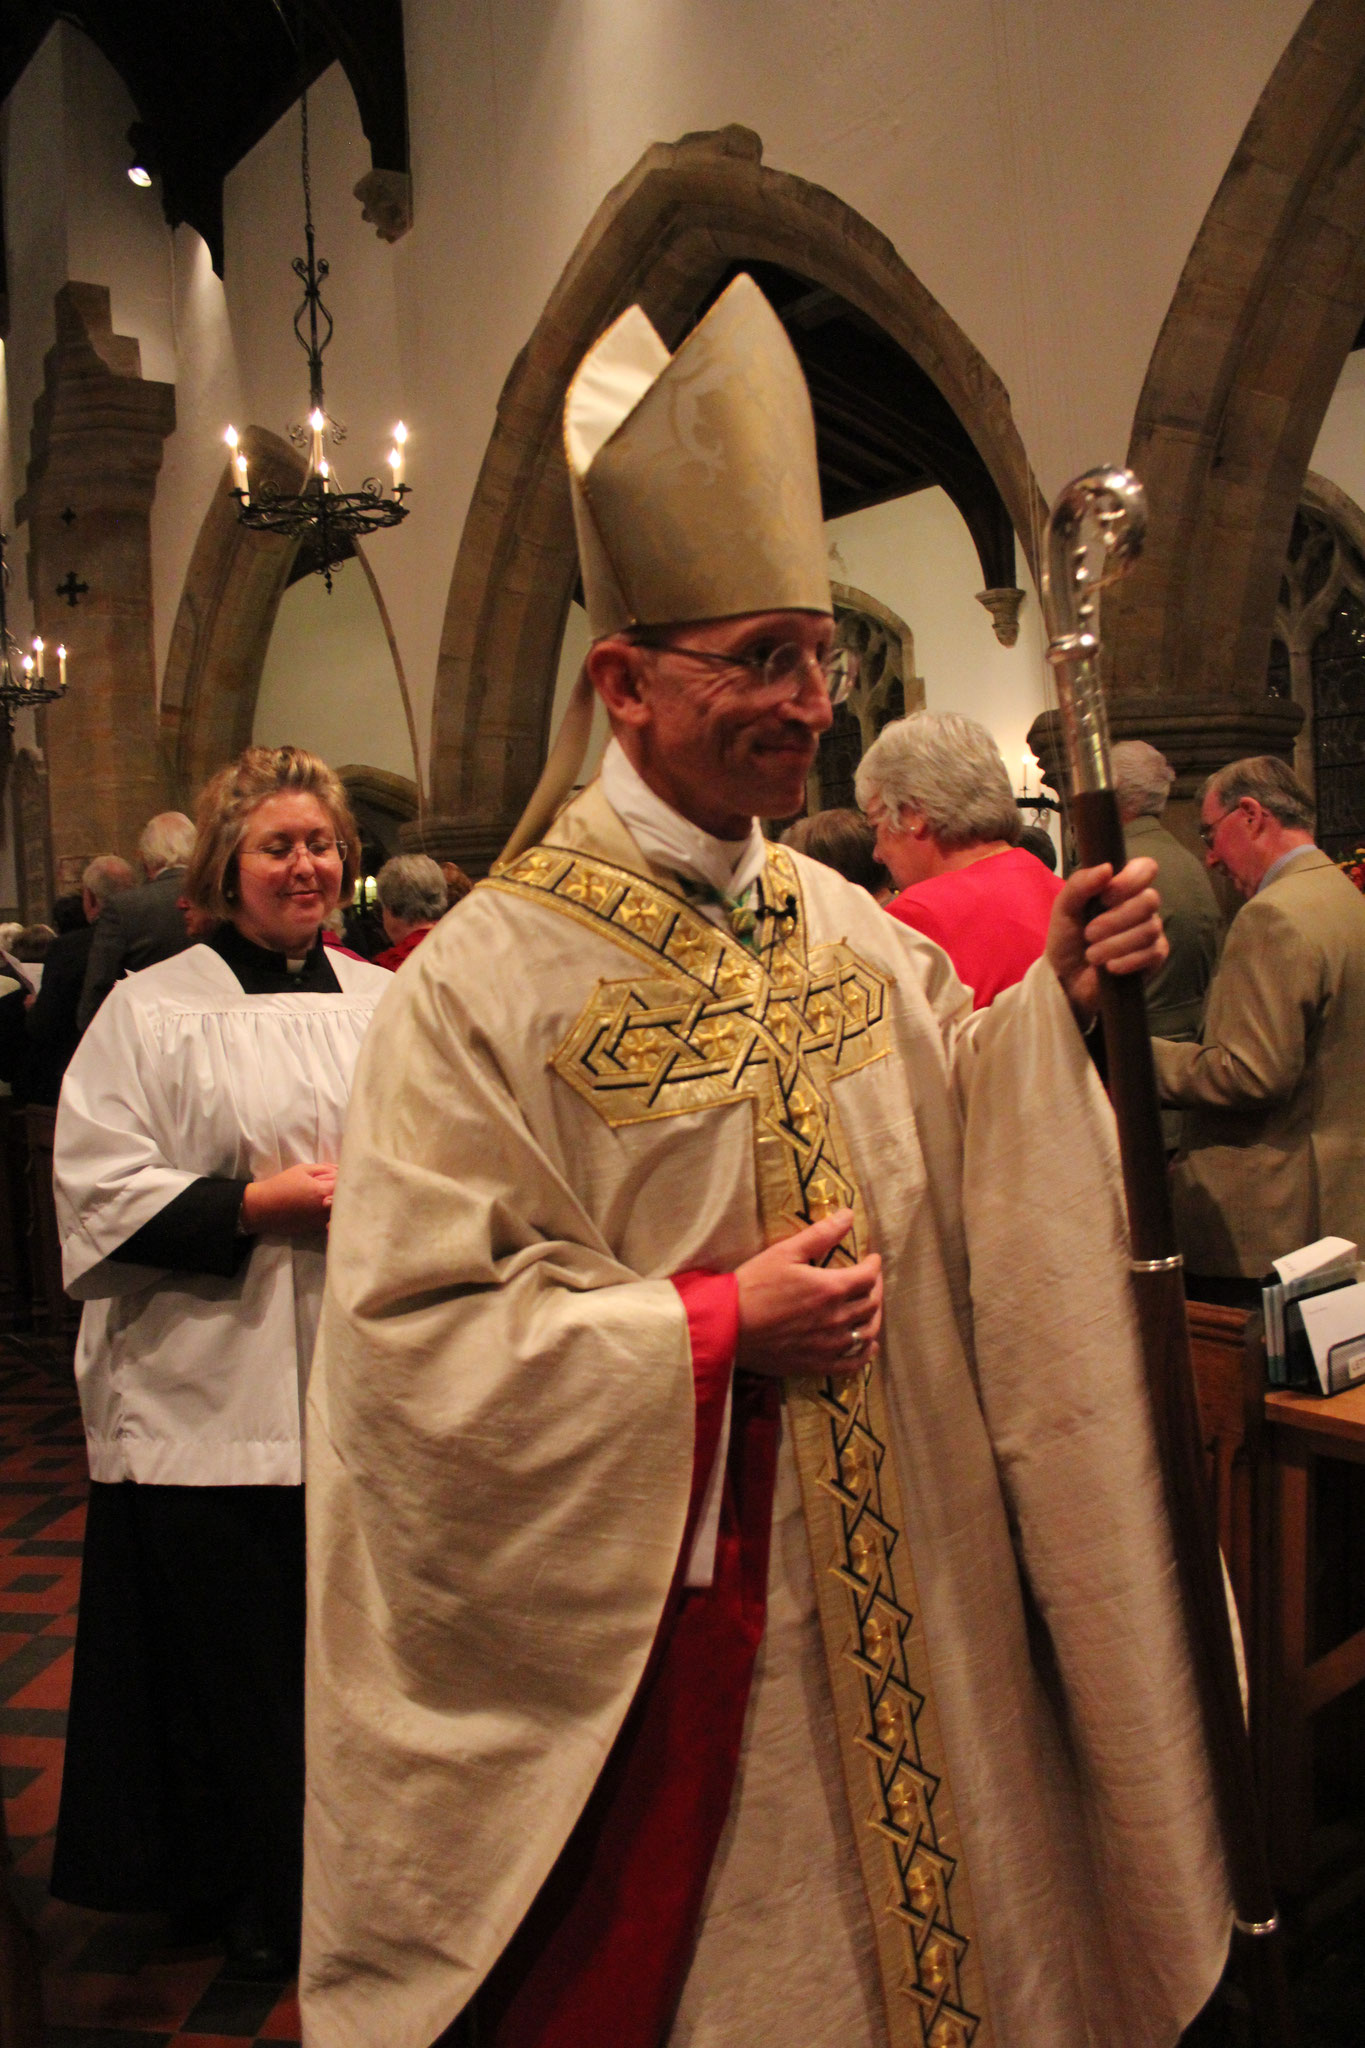 Rt Revd Dr Martin Warner, Bishop of Chichester